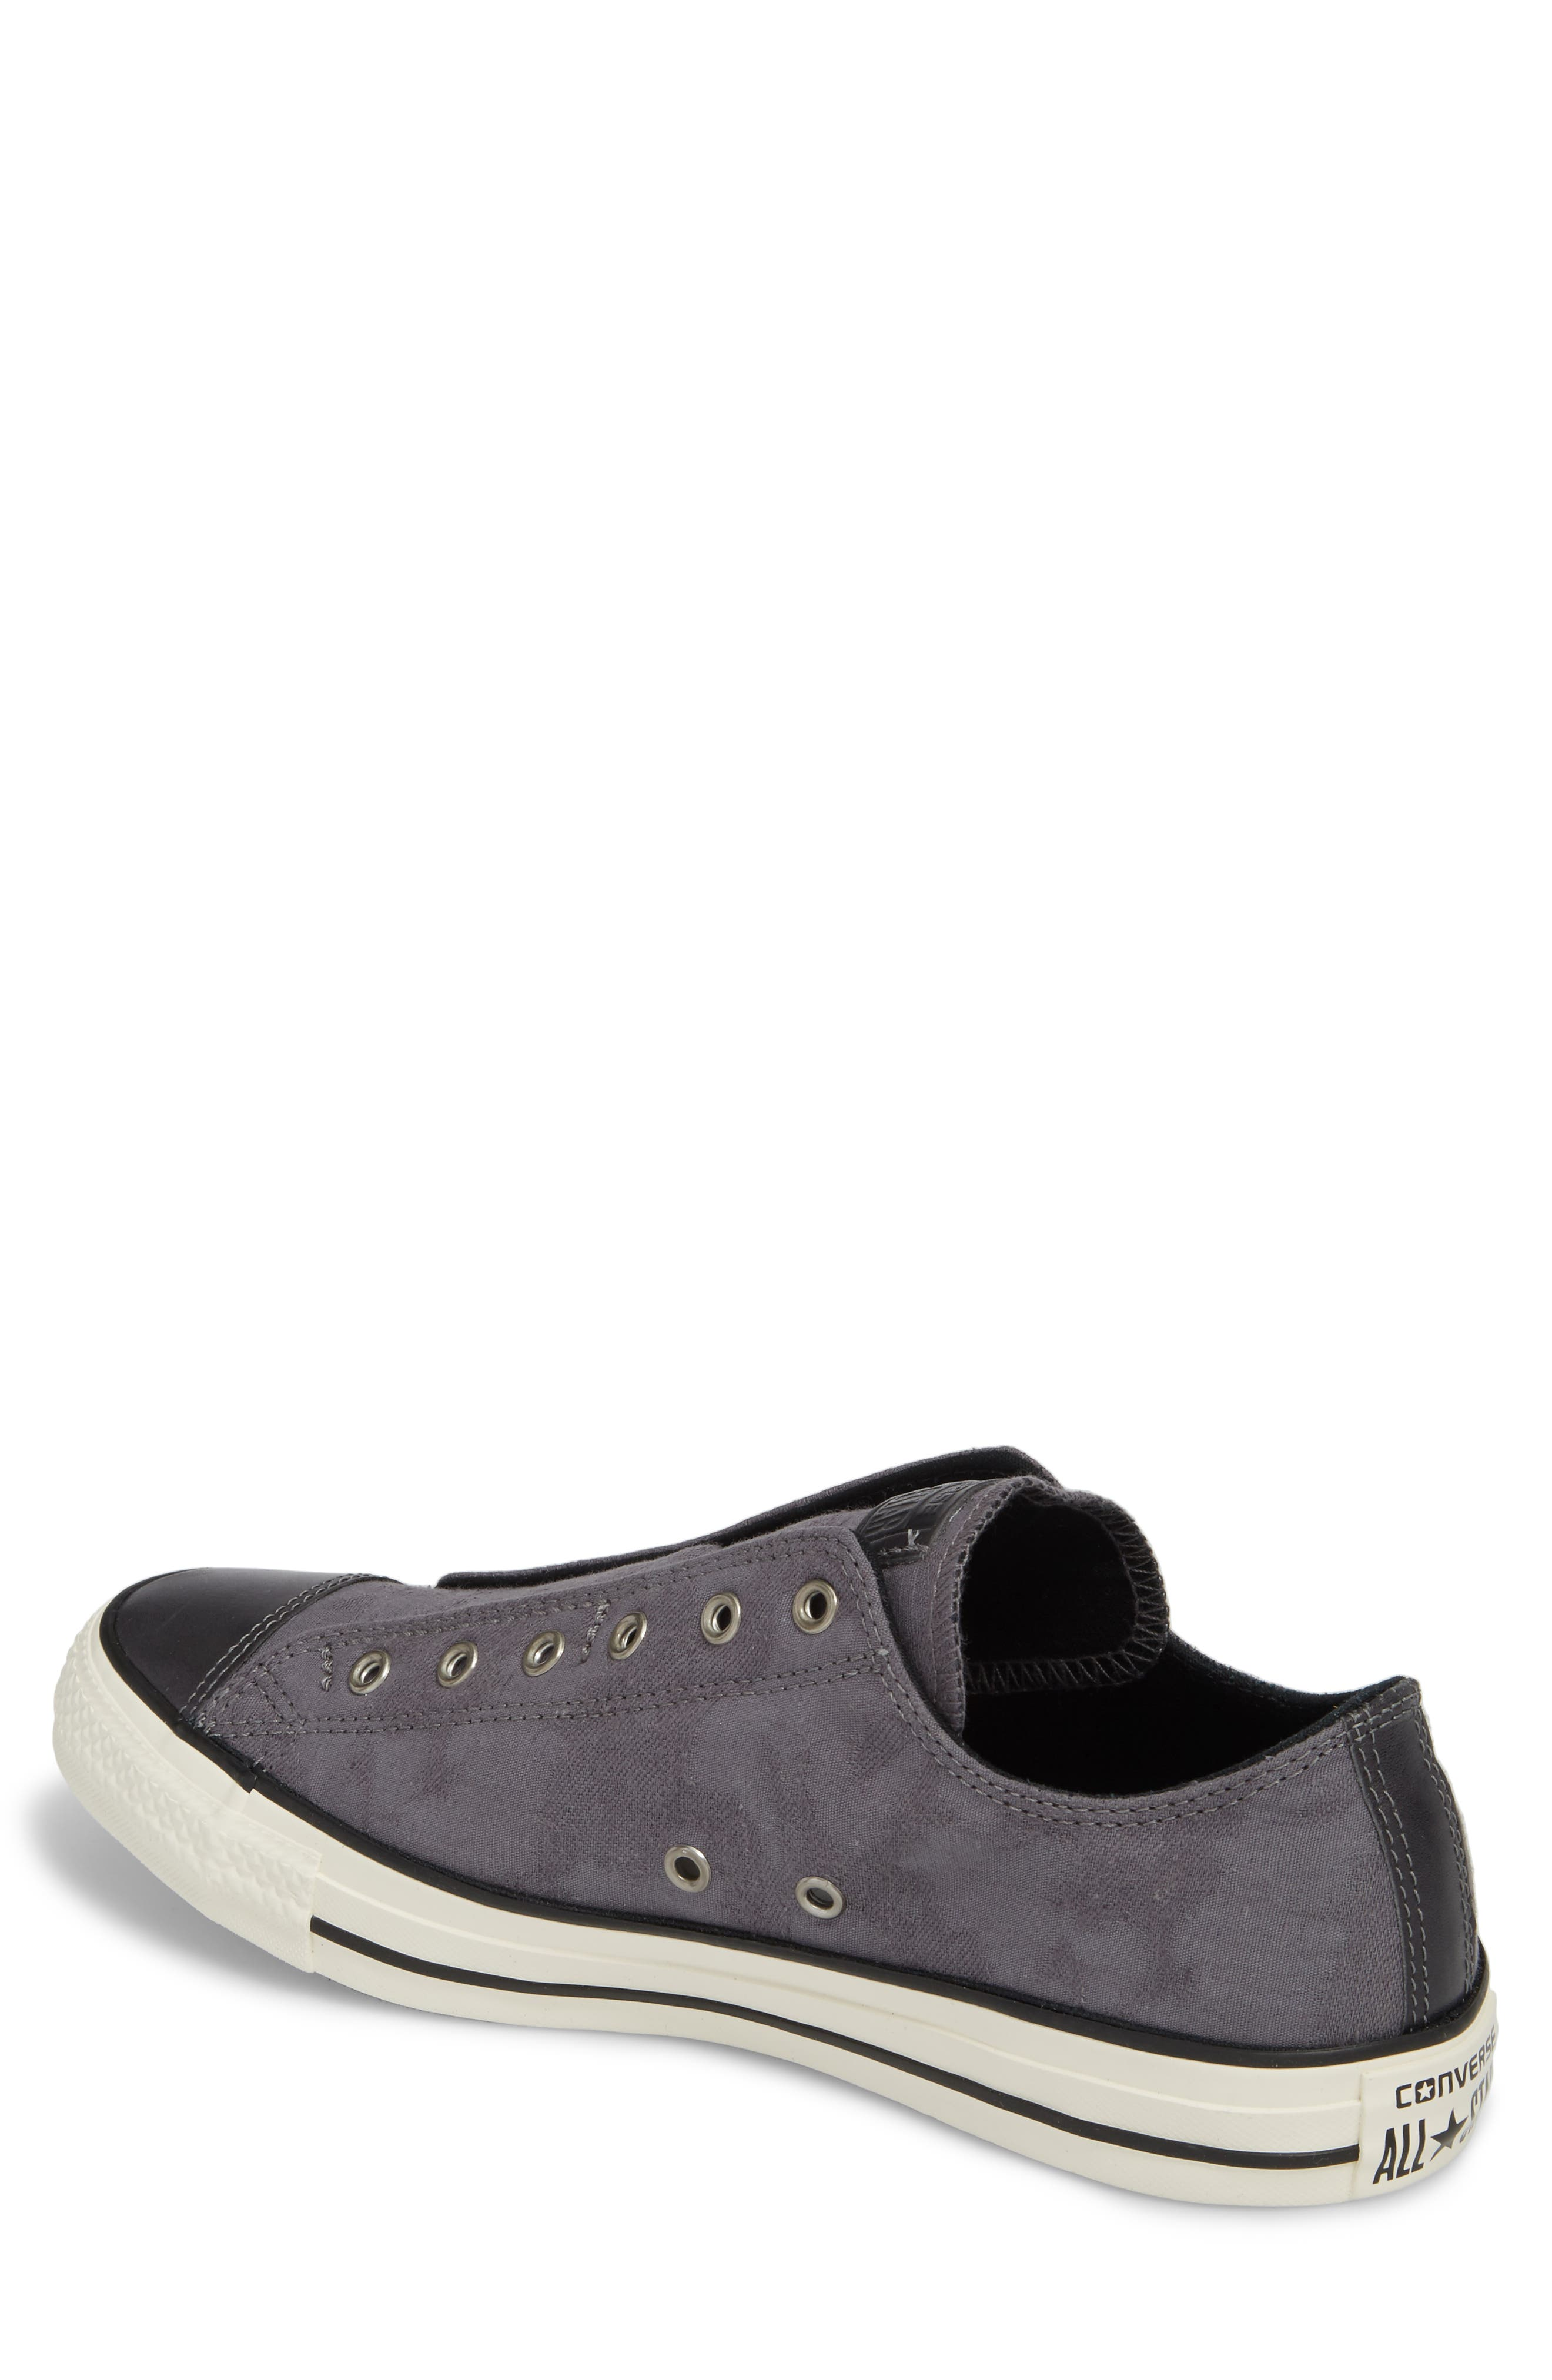 Chuck Taylor<sup>®</sup> All Star<sup>®</sup> Laceless Low Top Sneaker,                             Alternate thumbnail 2, color,                             THUNDER